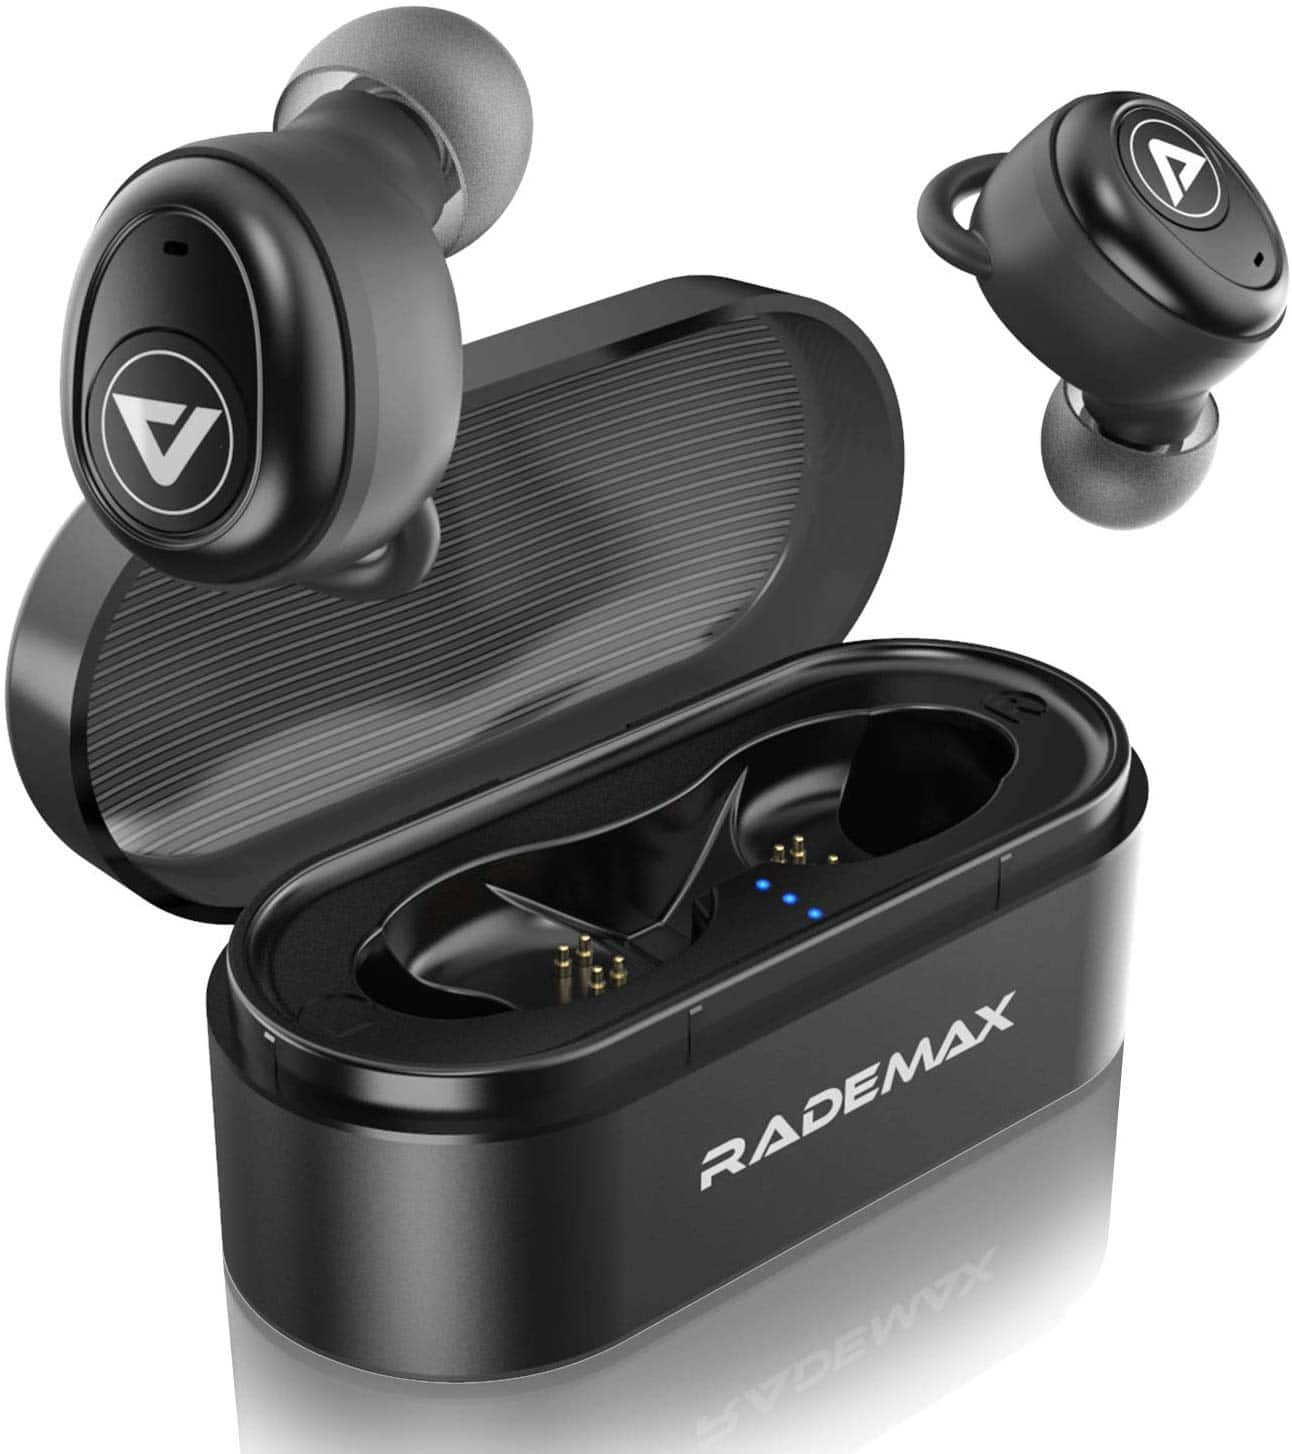 [Prime Members] Wireless Bluetooth 5.0 Earbuds $19.99 Free One Day Shipping